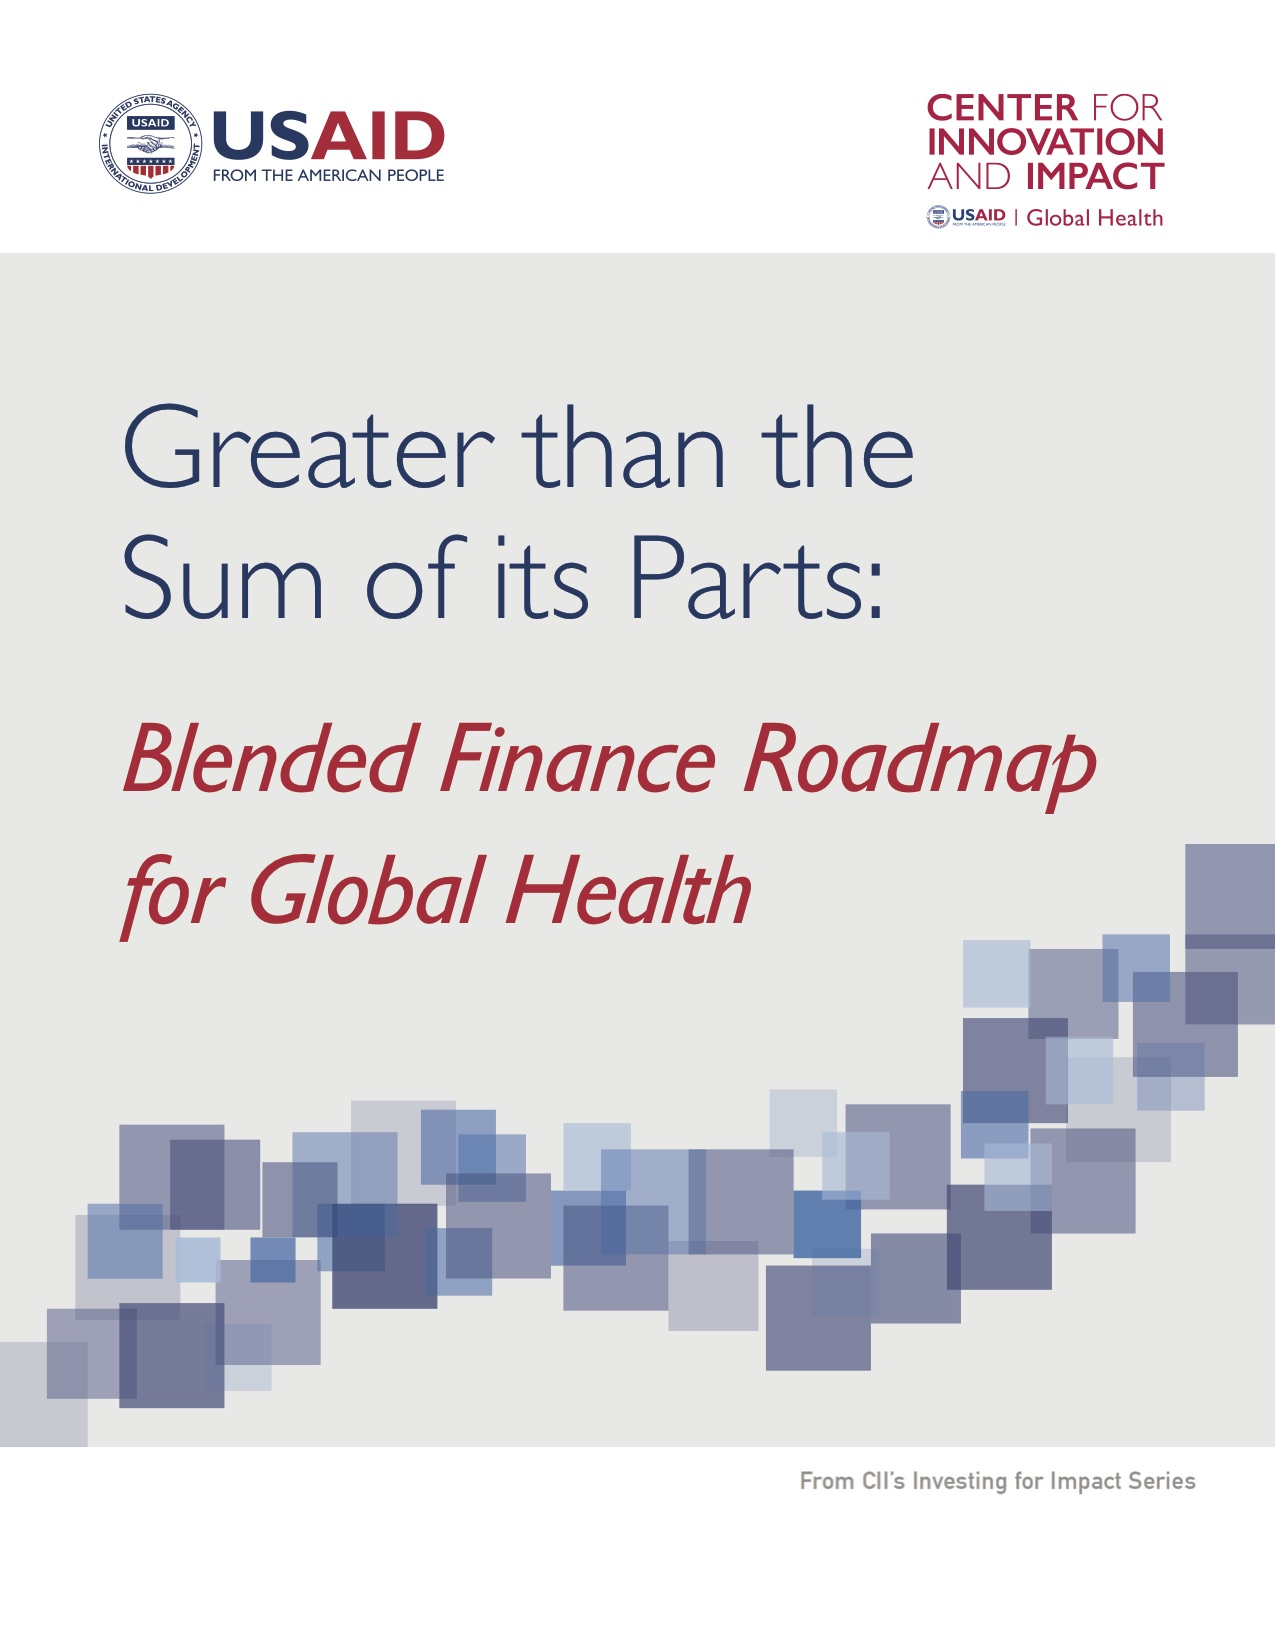 Greater than the Sum of its Parts: Blended Finance Roadmap for Global Health